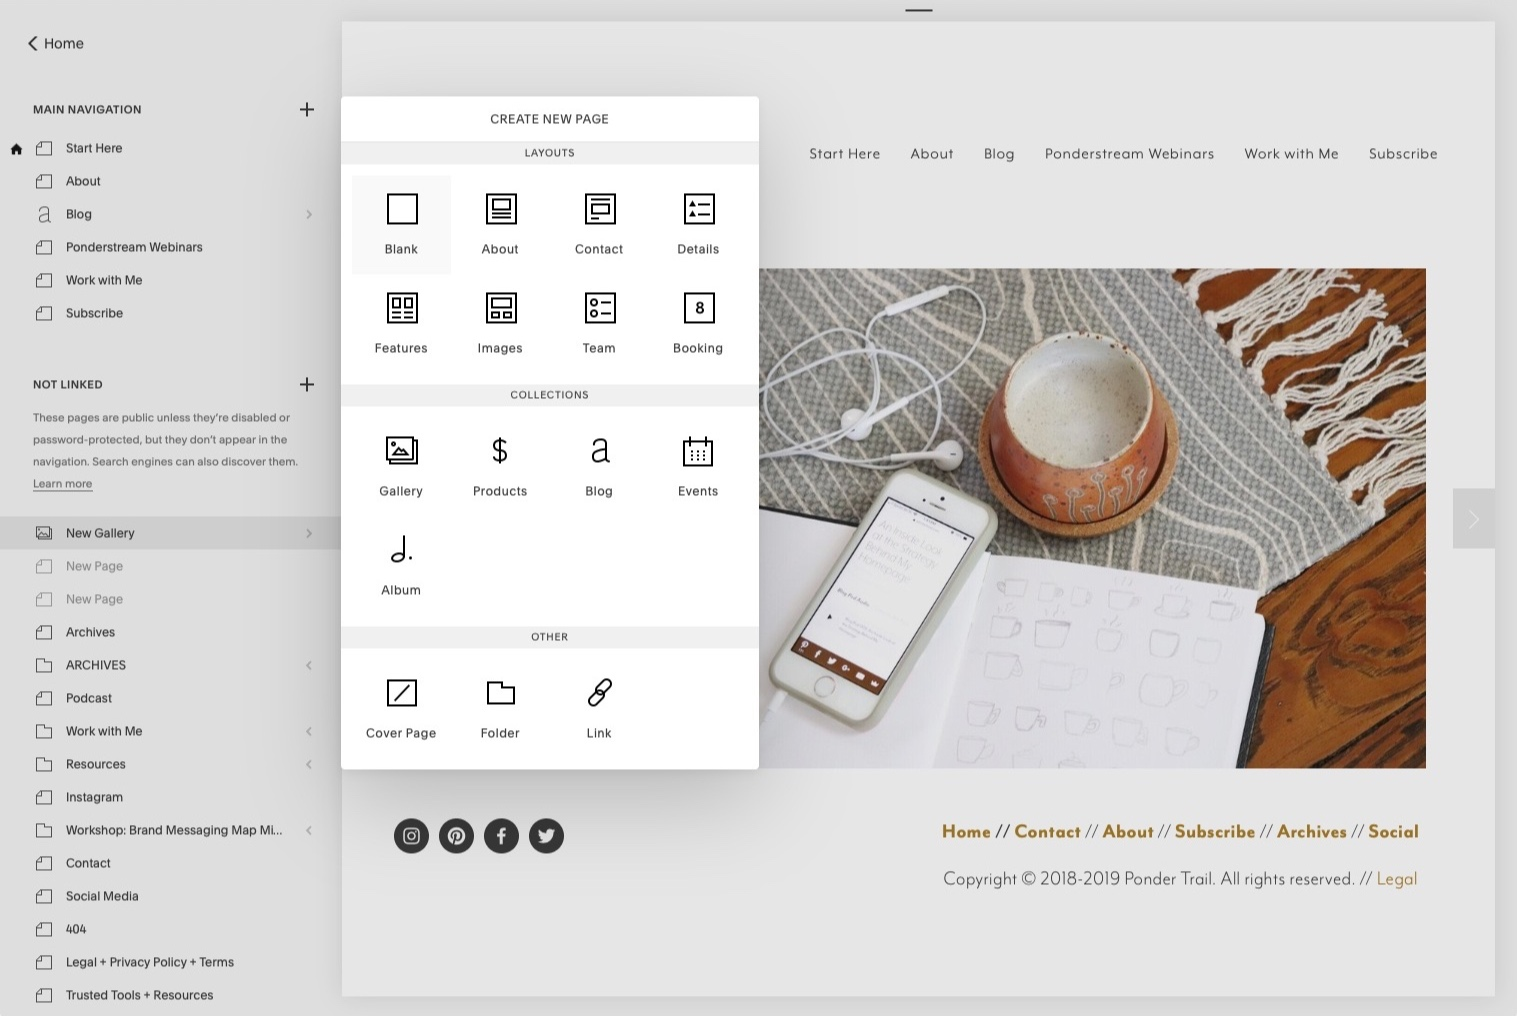 How to create a new page in Squarespace